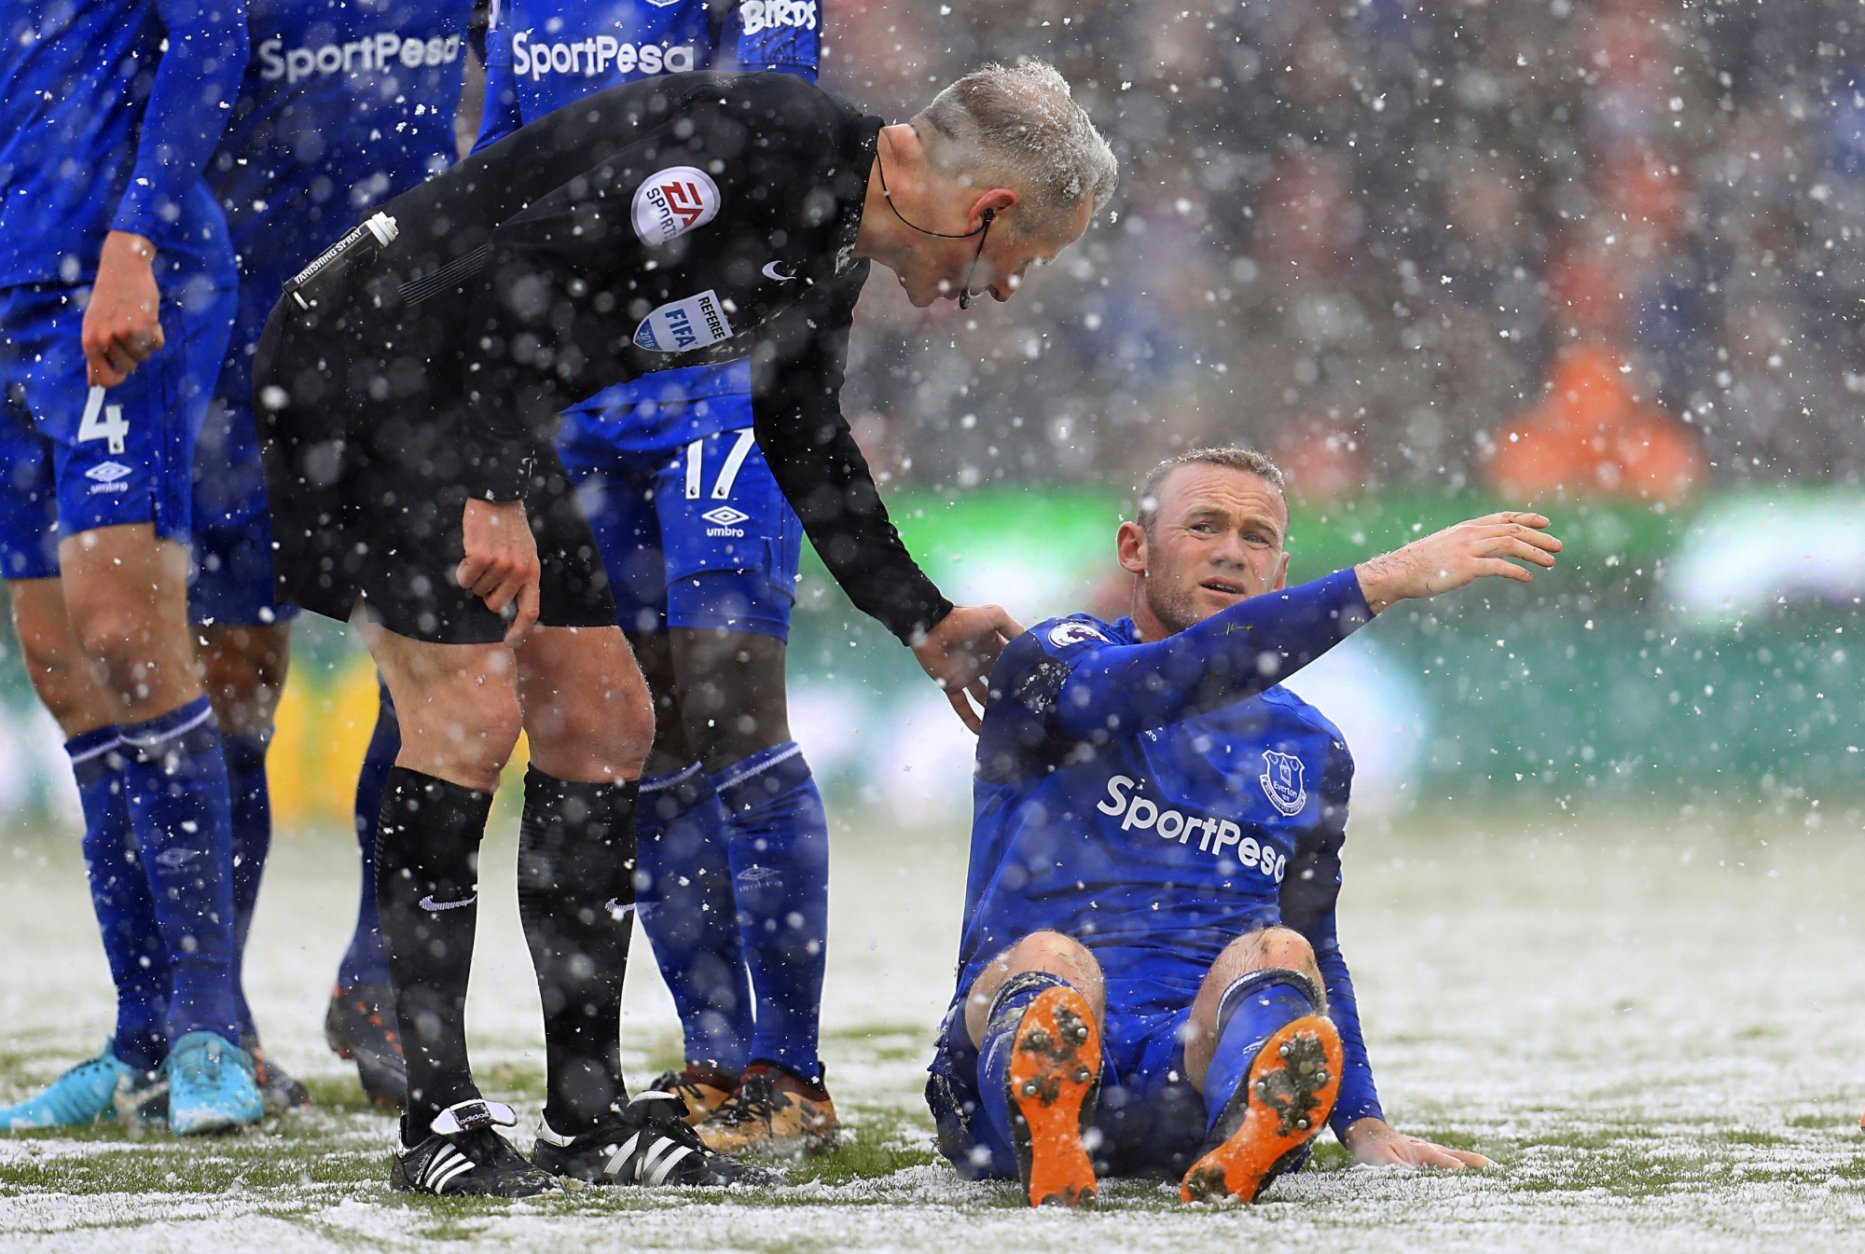 Everton's Wayne Rooney is helped up by referee Martin Atkinson during the English Premier League soccer match between Stoke City and Everton, at the bet365 Stadium, in Stoke, England, Saturday March 17, 2018. (Mike Egerton/PA via AP)